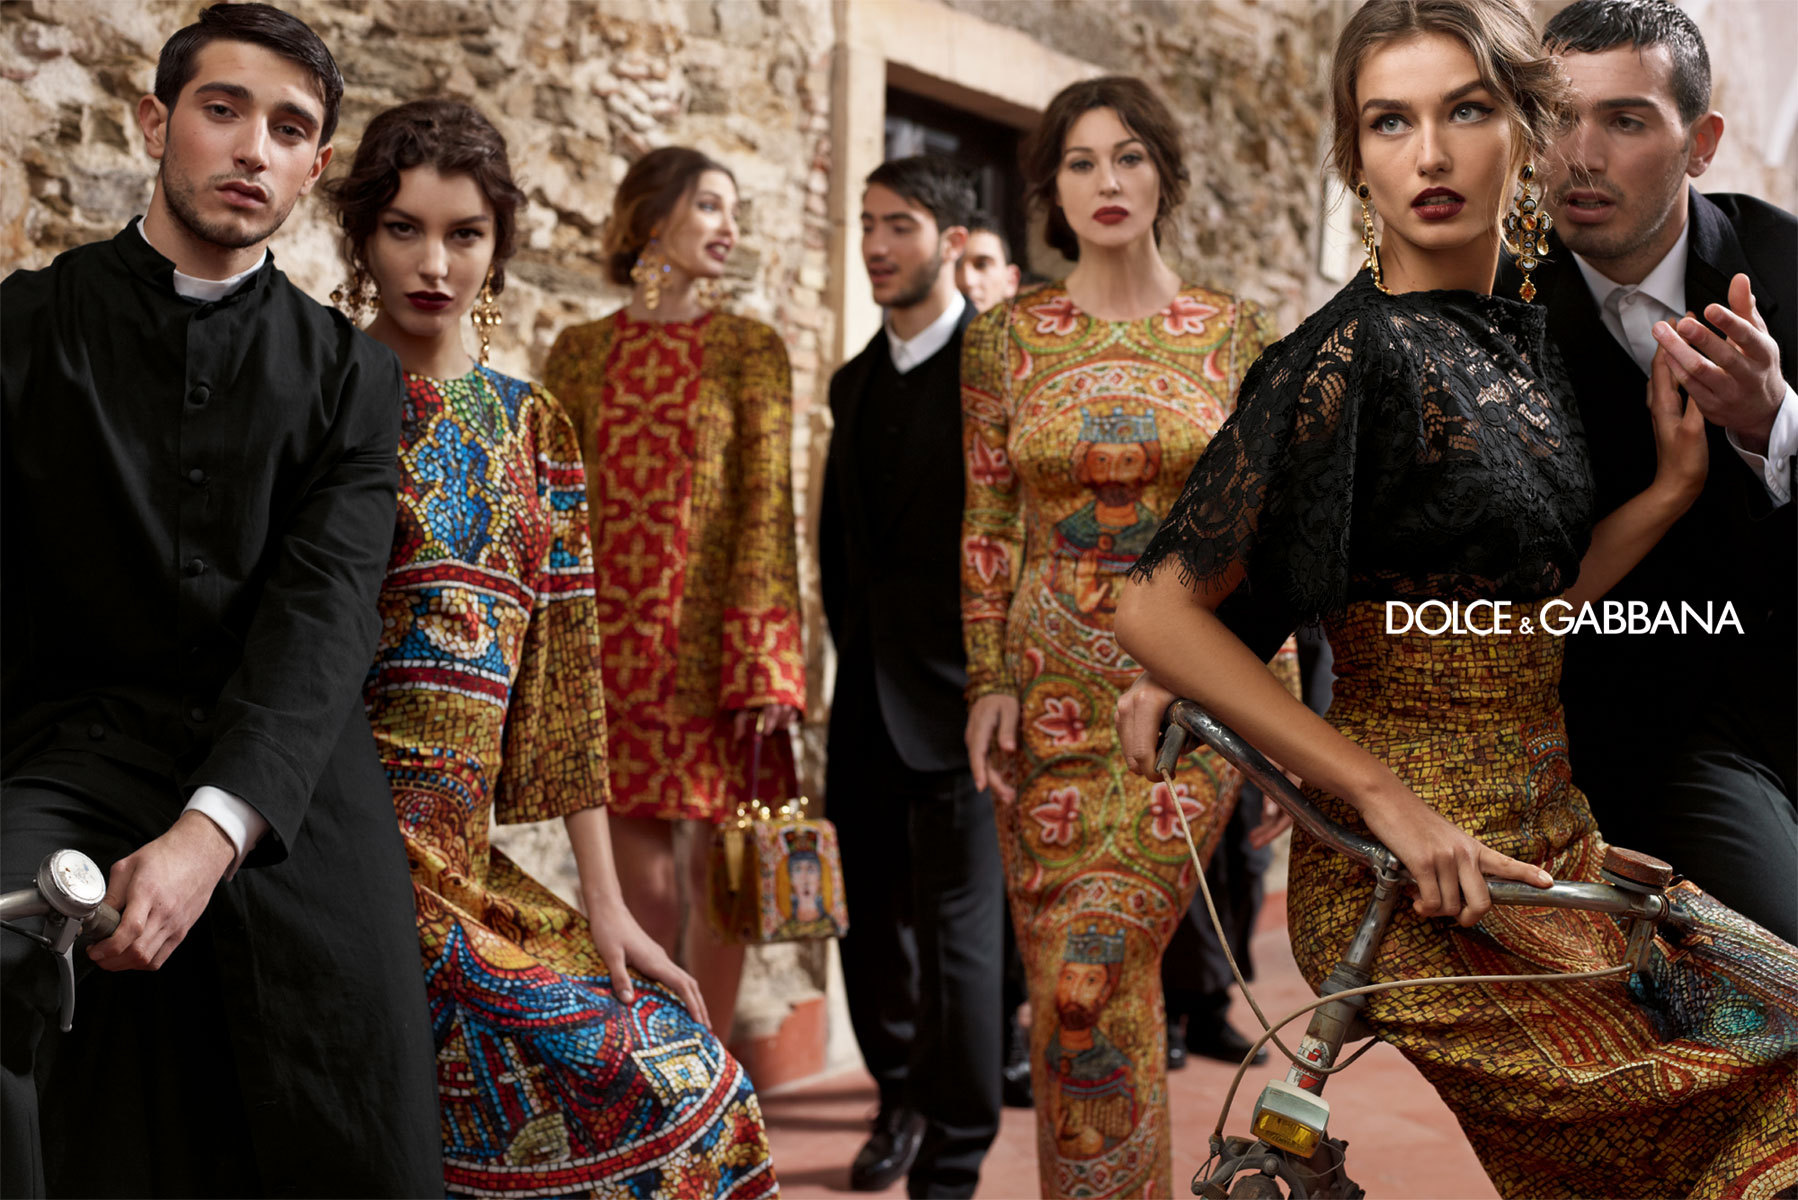 Amazing Dolce & Gabbana Pictures & Backgrounds